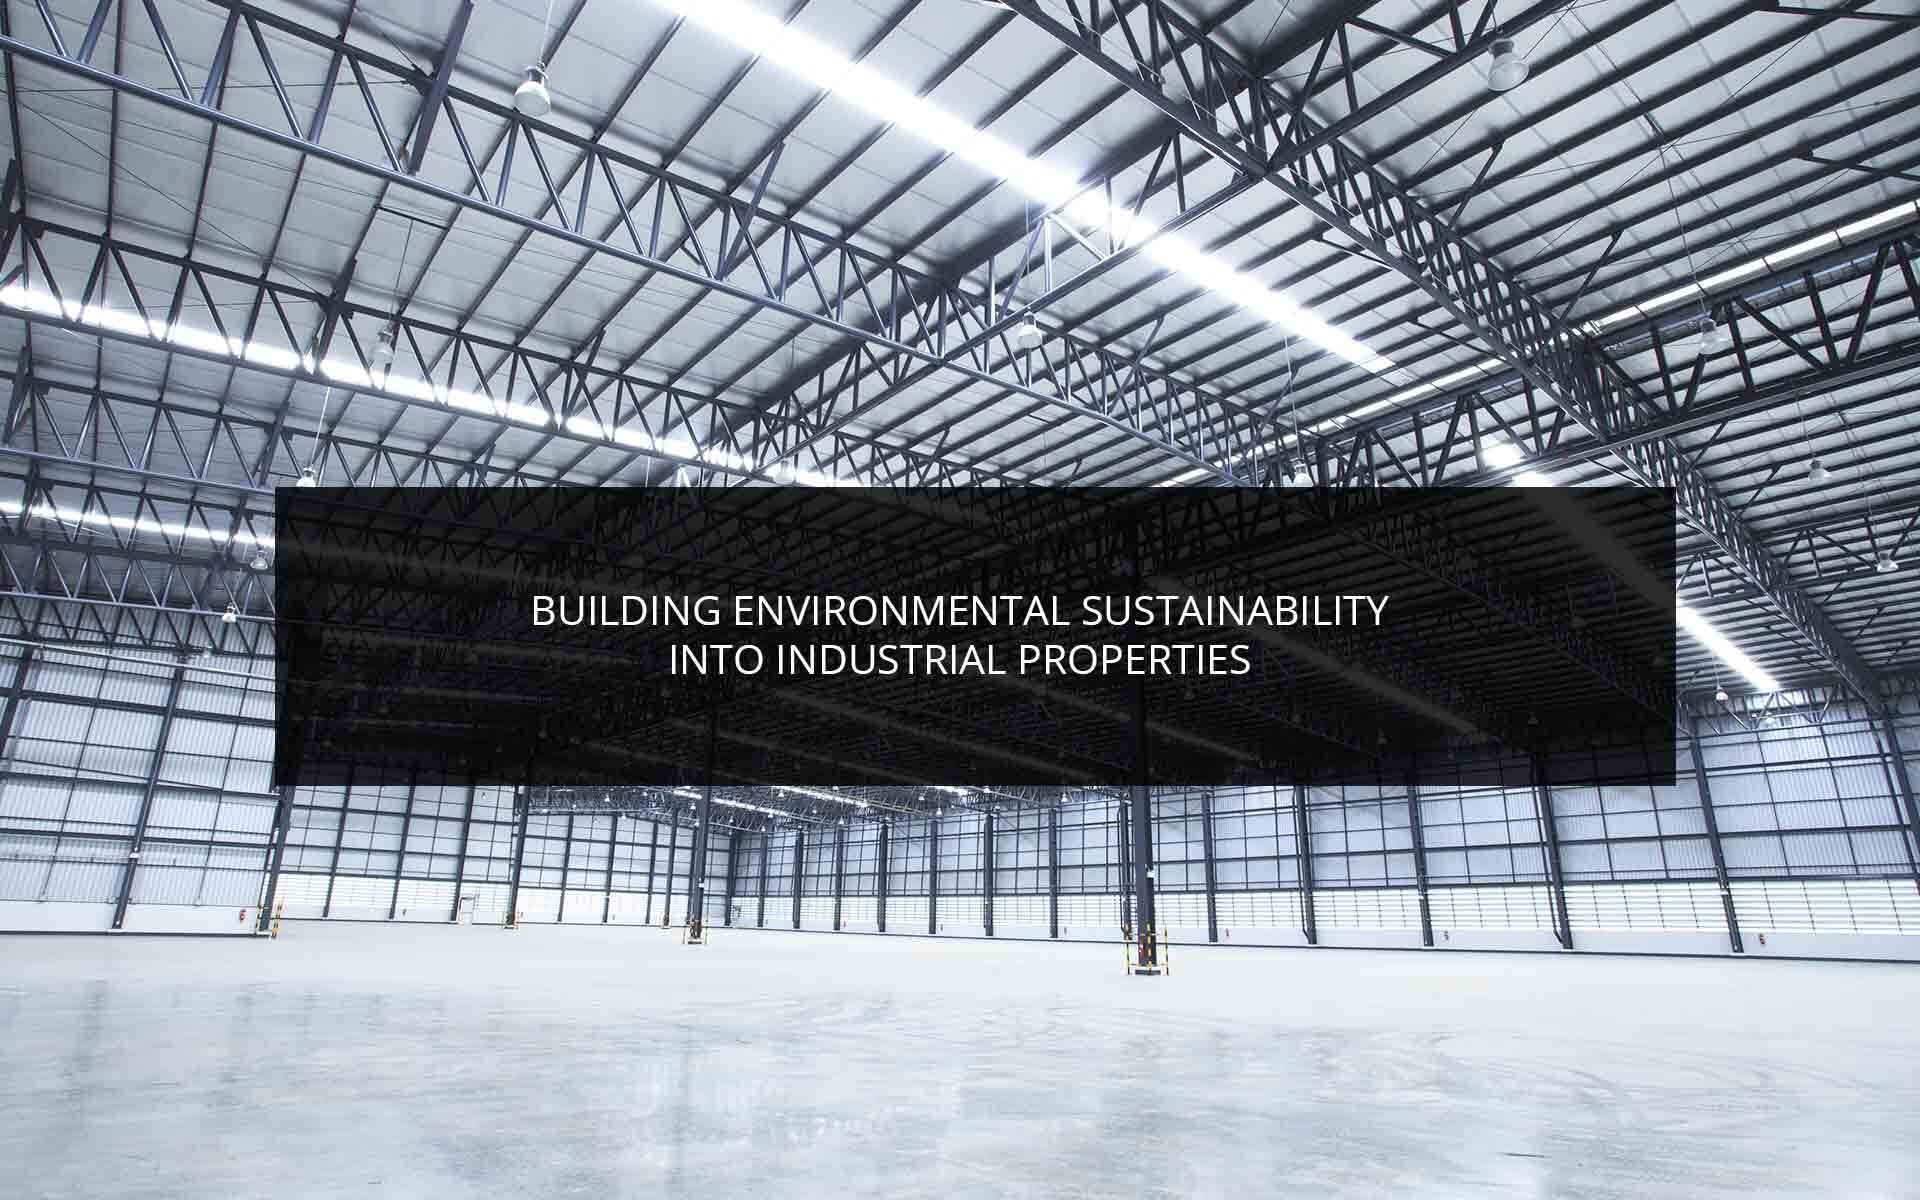 Building Environmental Sustainability Into Industrial Properties